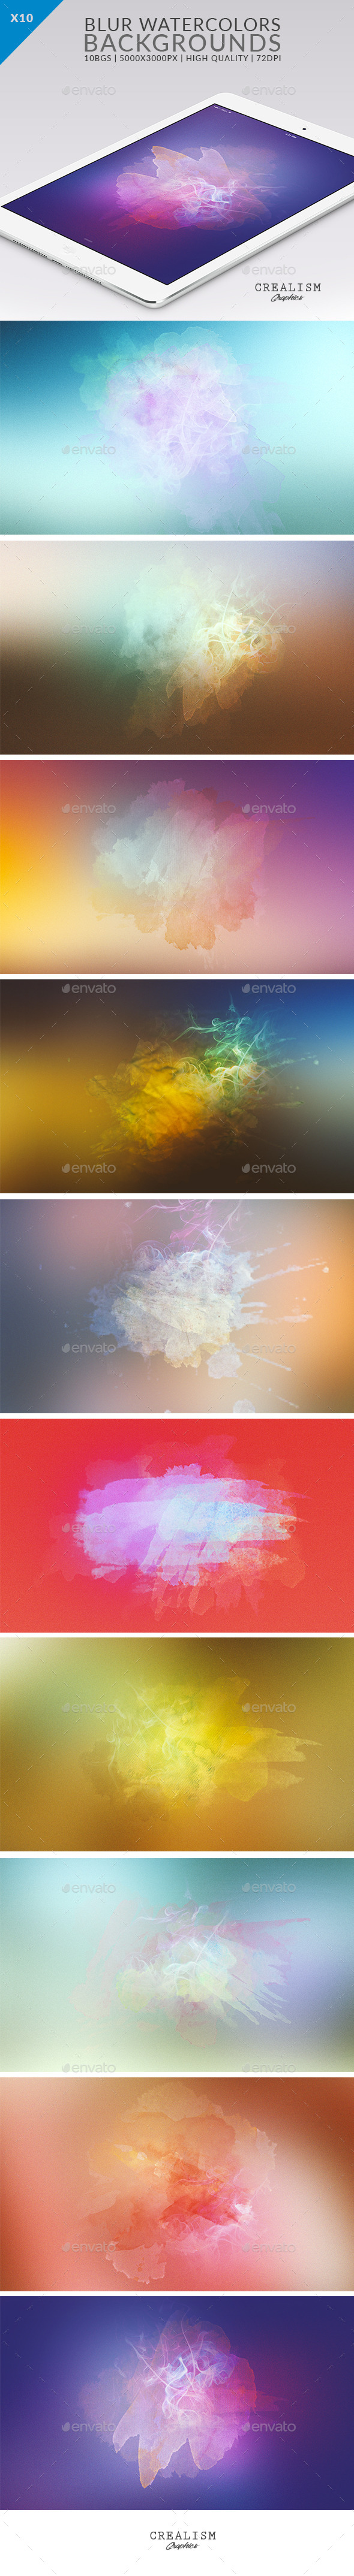 10 Blur WaterColor Backgrounds - Abstract Backgrounds